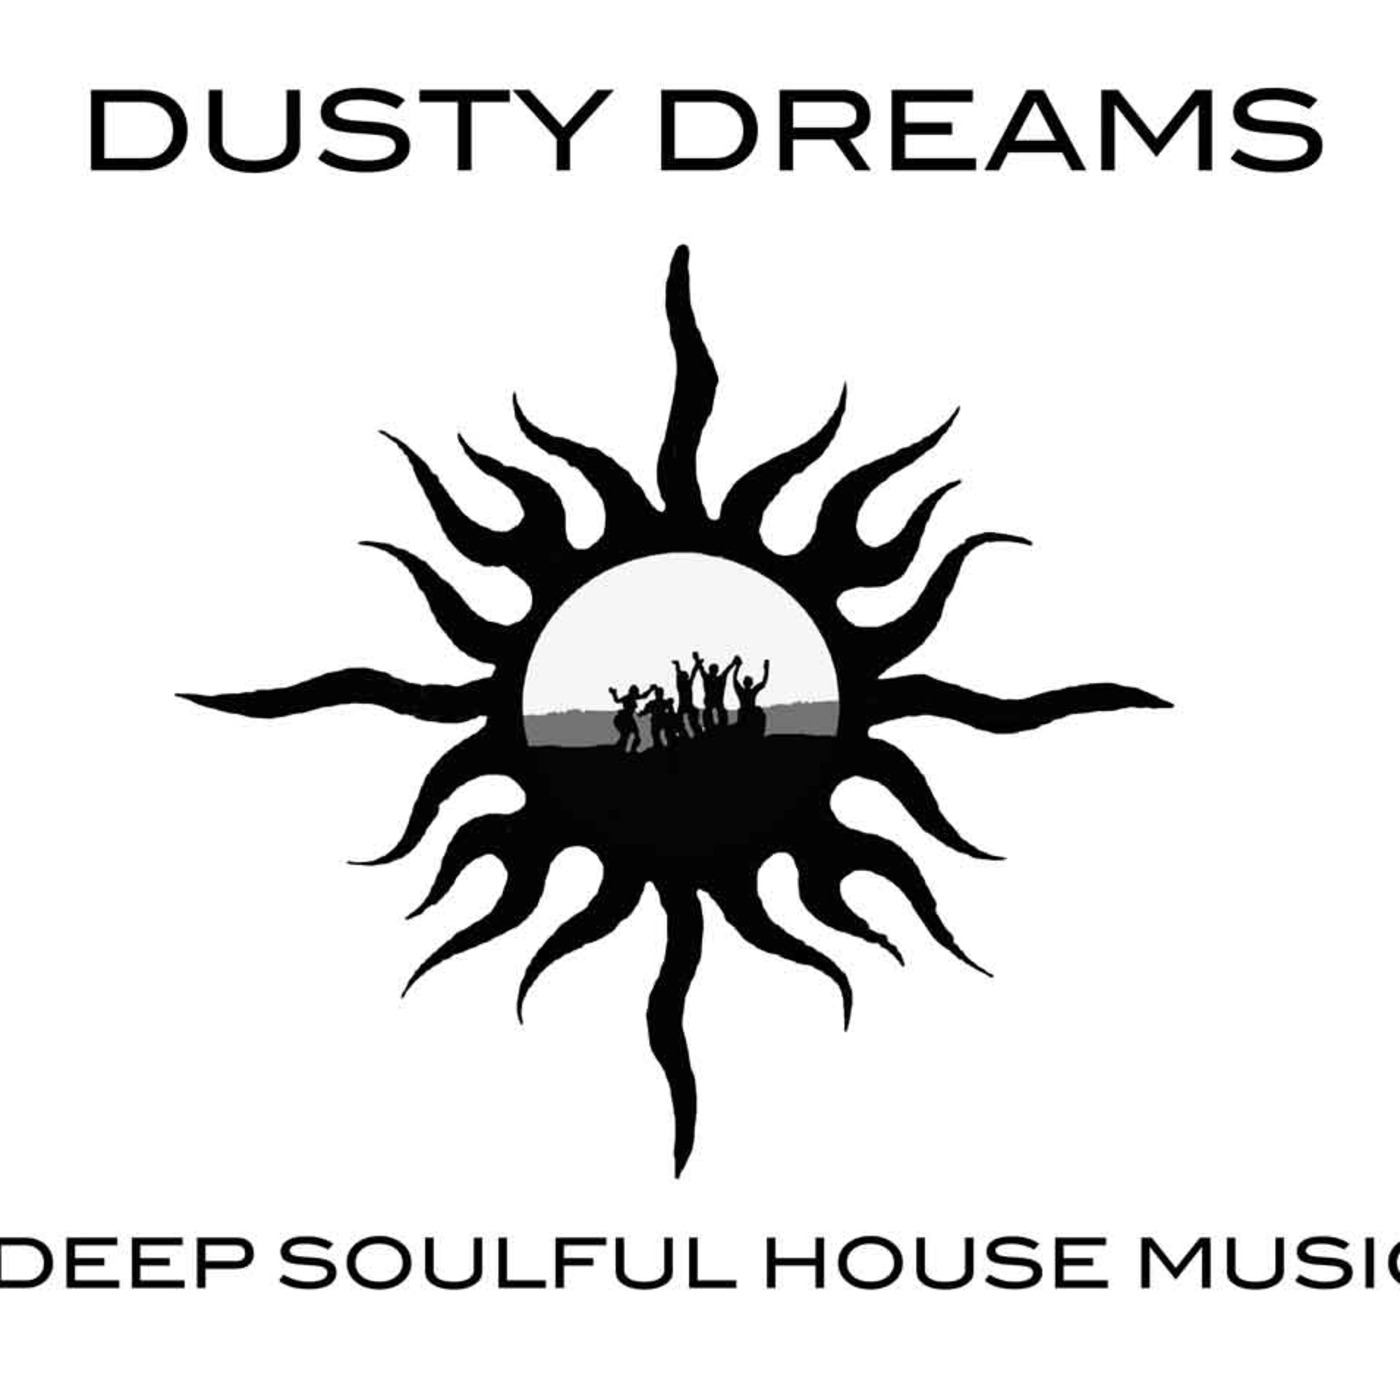 Dusty Dreams' Podcast